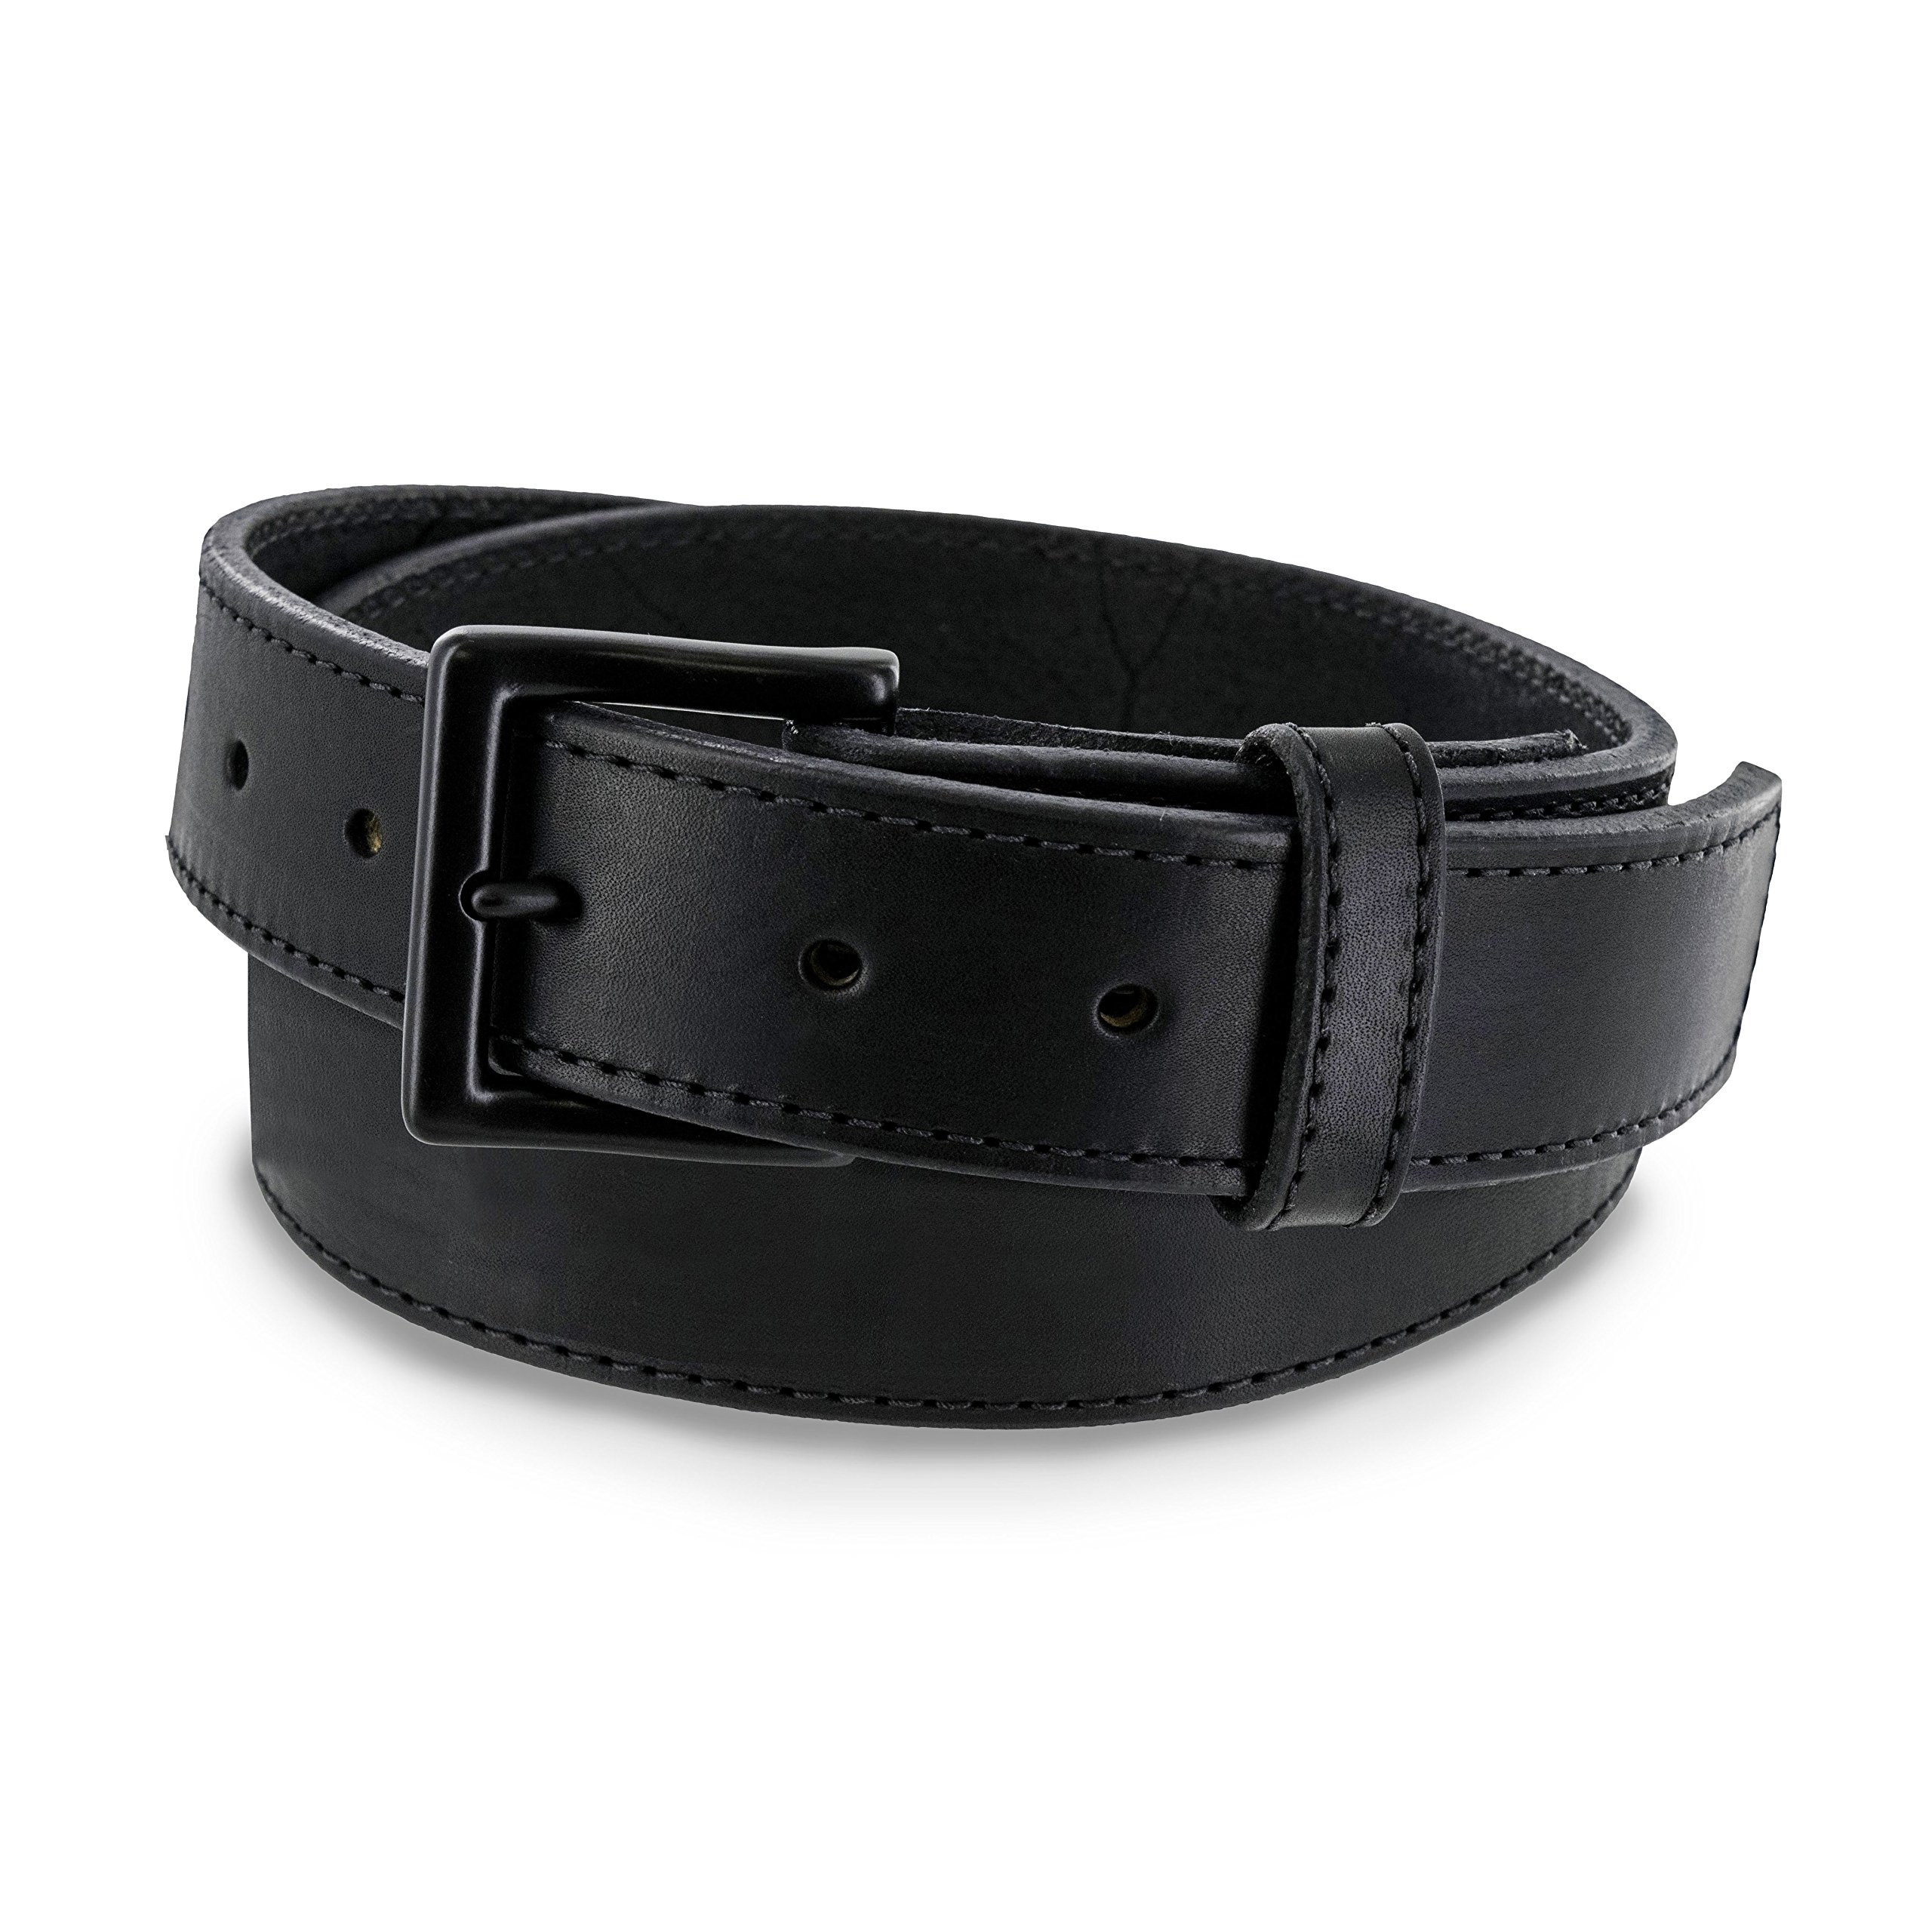 b5c6e5157b6 Hanks NO Break Black Out Leather Gun Belt - 17OZ for Concealed Carry CCW  Tactical USE